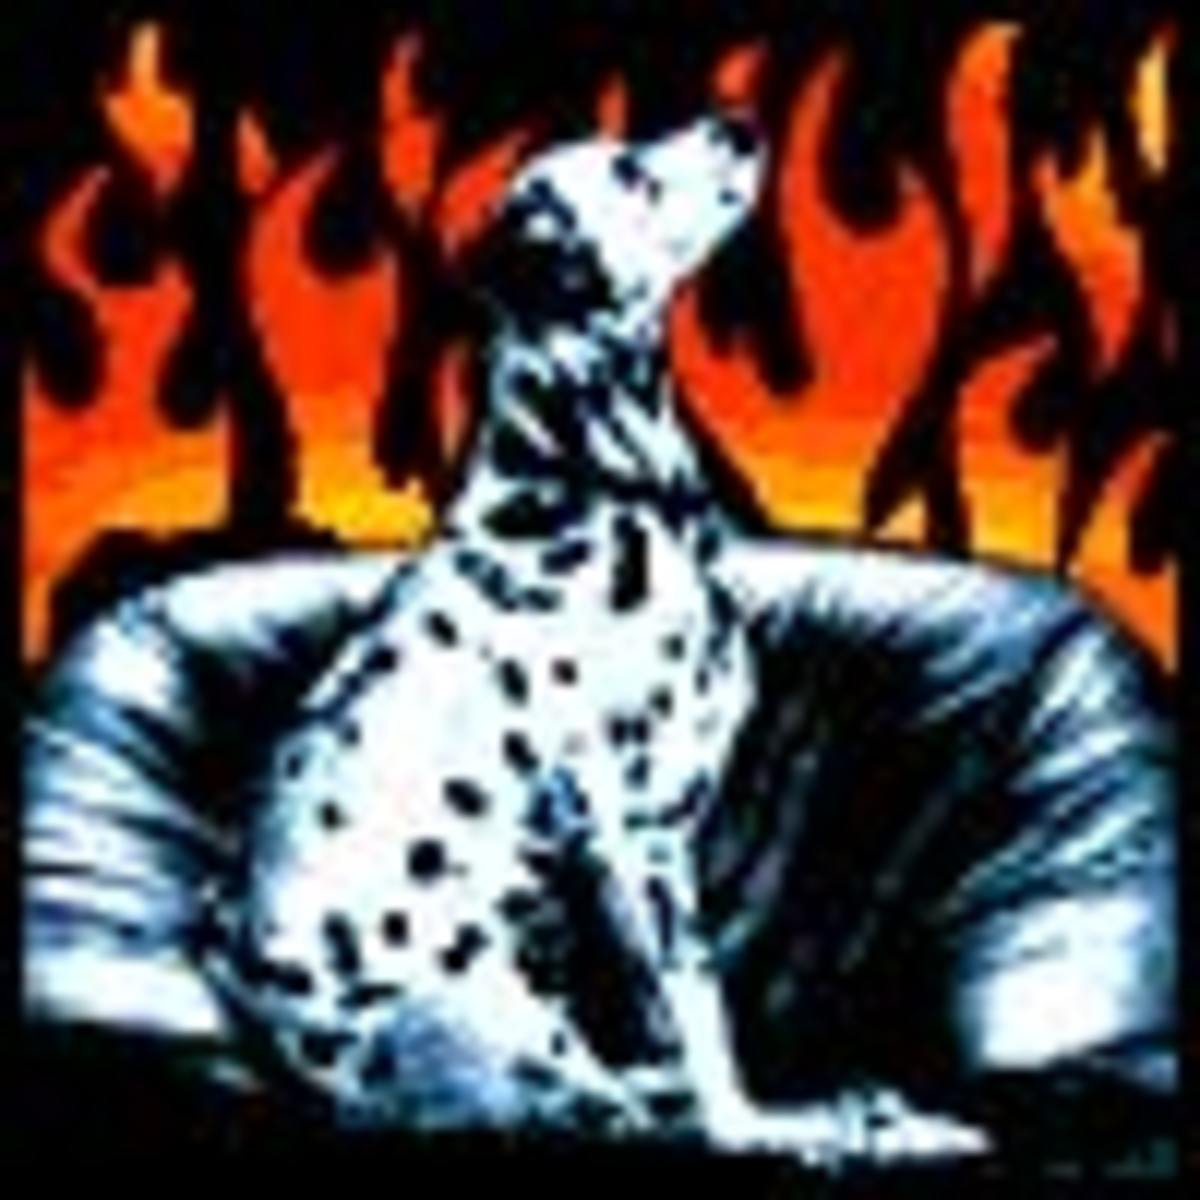 THE FIRE DOG / c. firedog